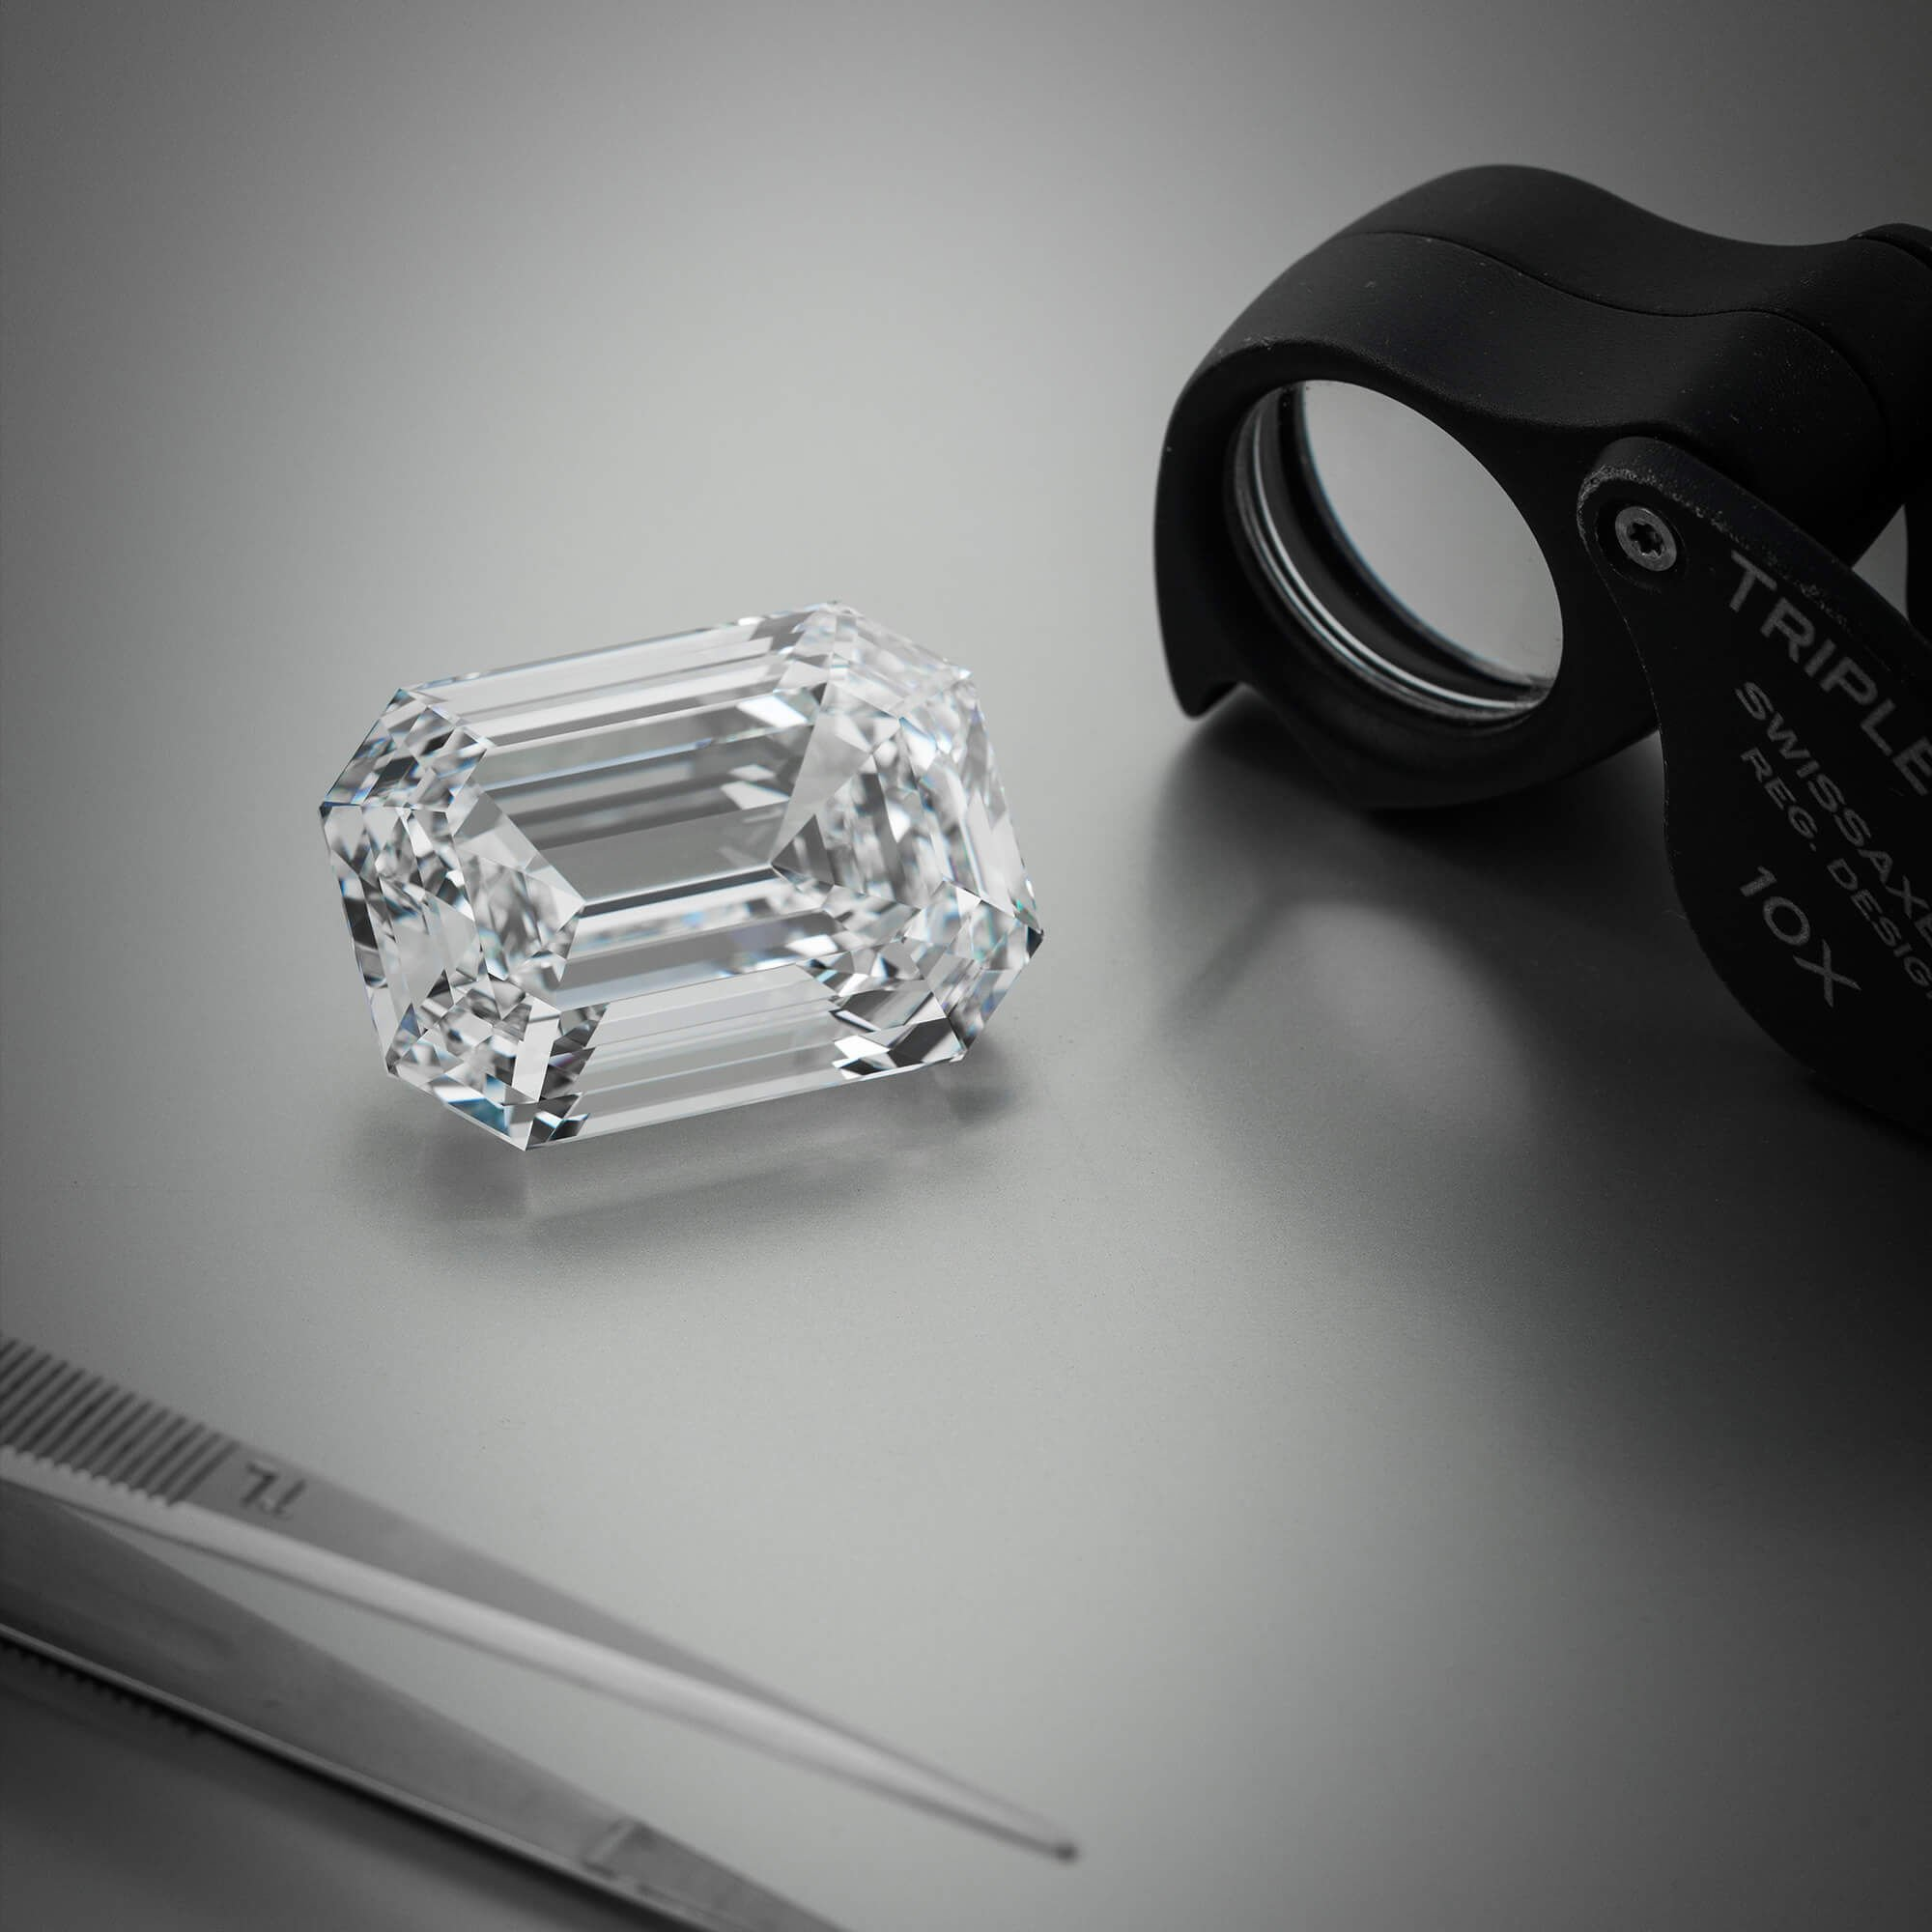 Graff Eternal Twins diamond in the workshop next to a loupe.